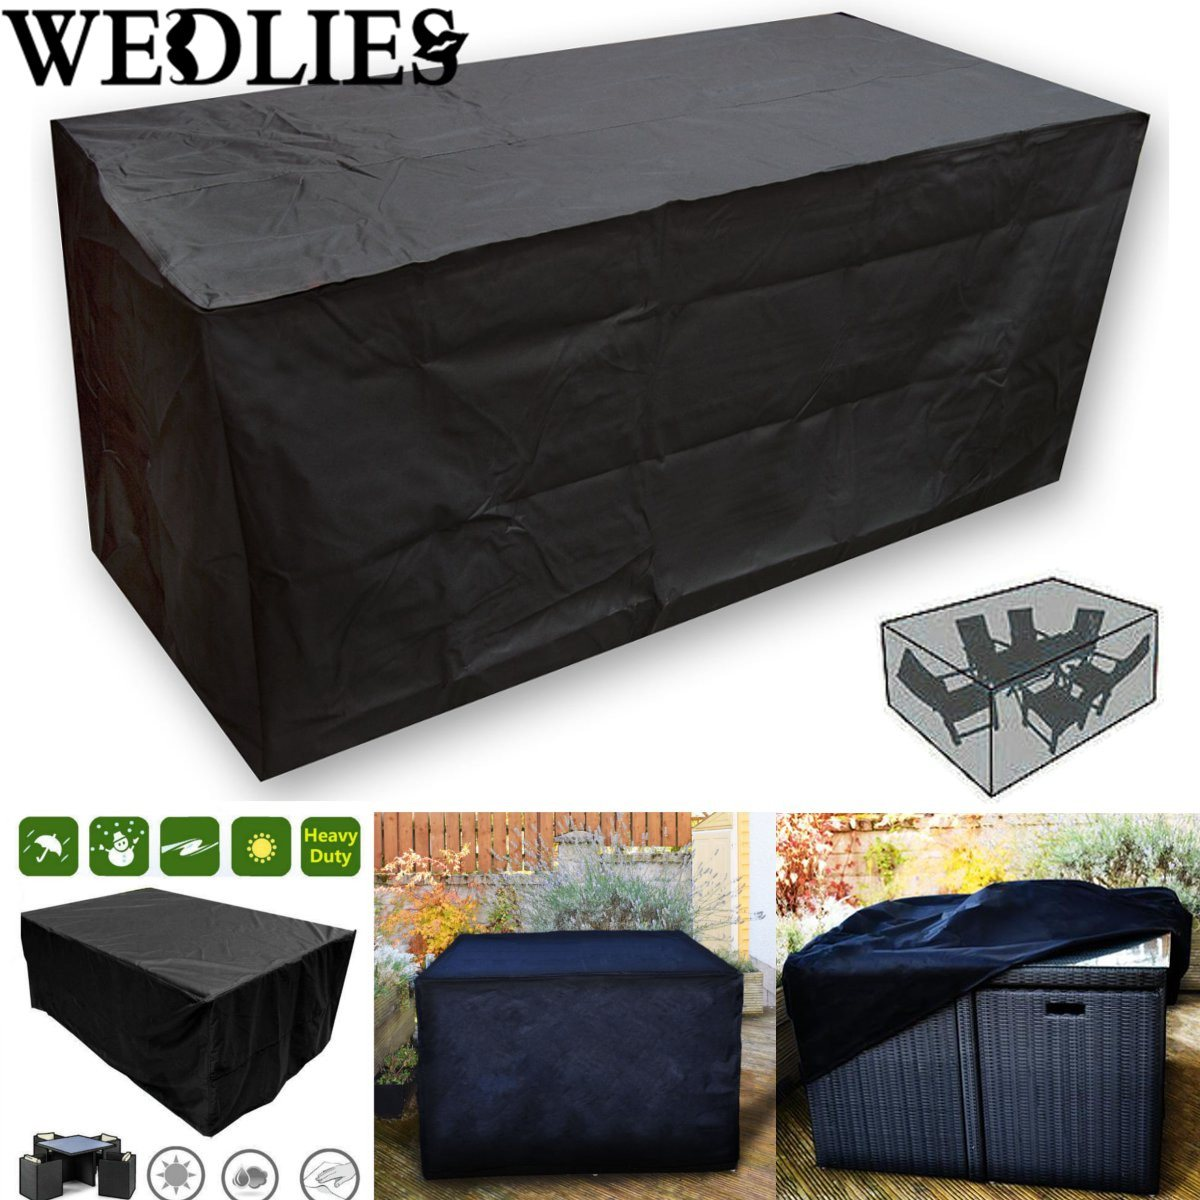 Black Waterproof Outdoor Patio Furniture Set Cover Garden Table Protective Cover Dustproof Table Cloth Home Textile 205X104X71cm(China (Mainland))